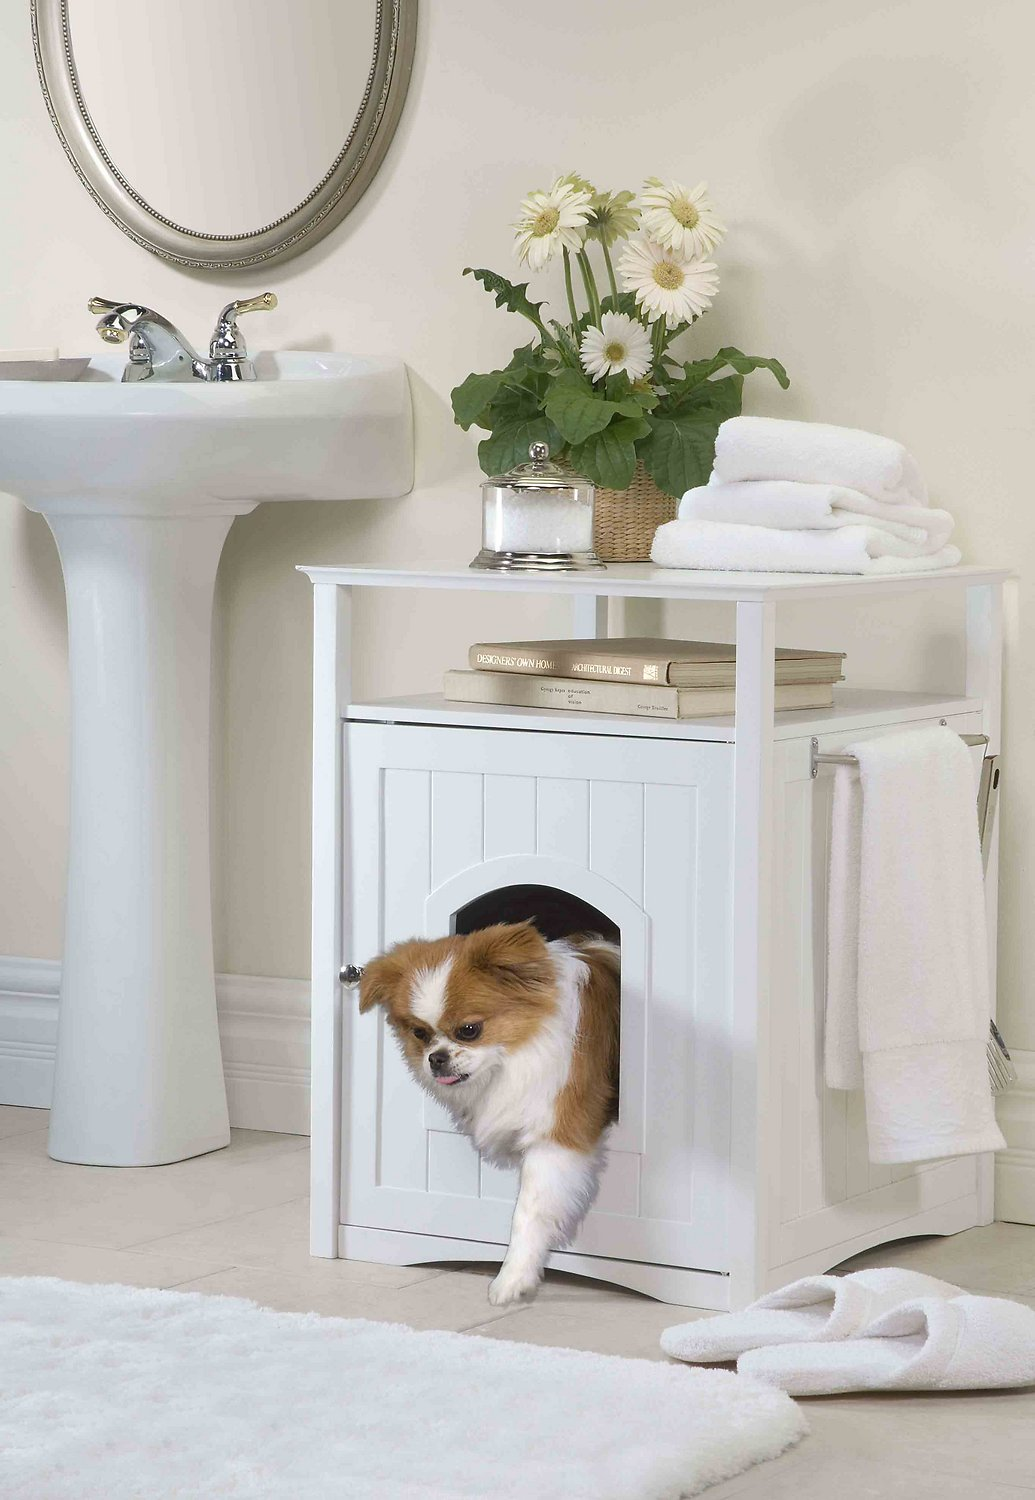 Washroom Products: Merry Products Washroom Night Stand Multifunctional Litter